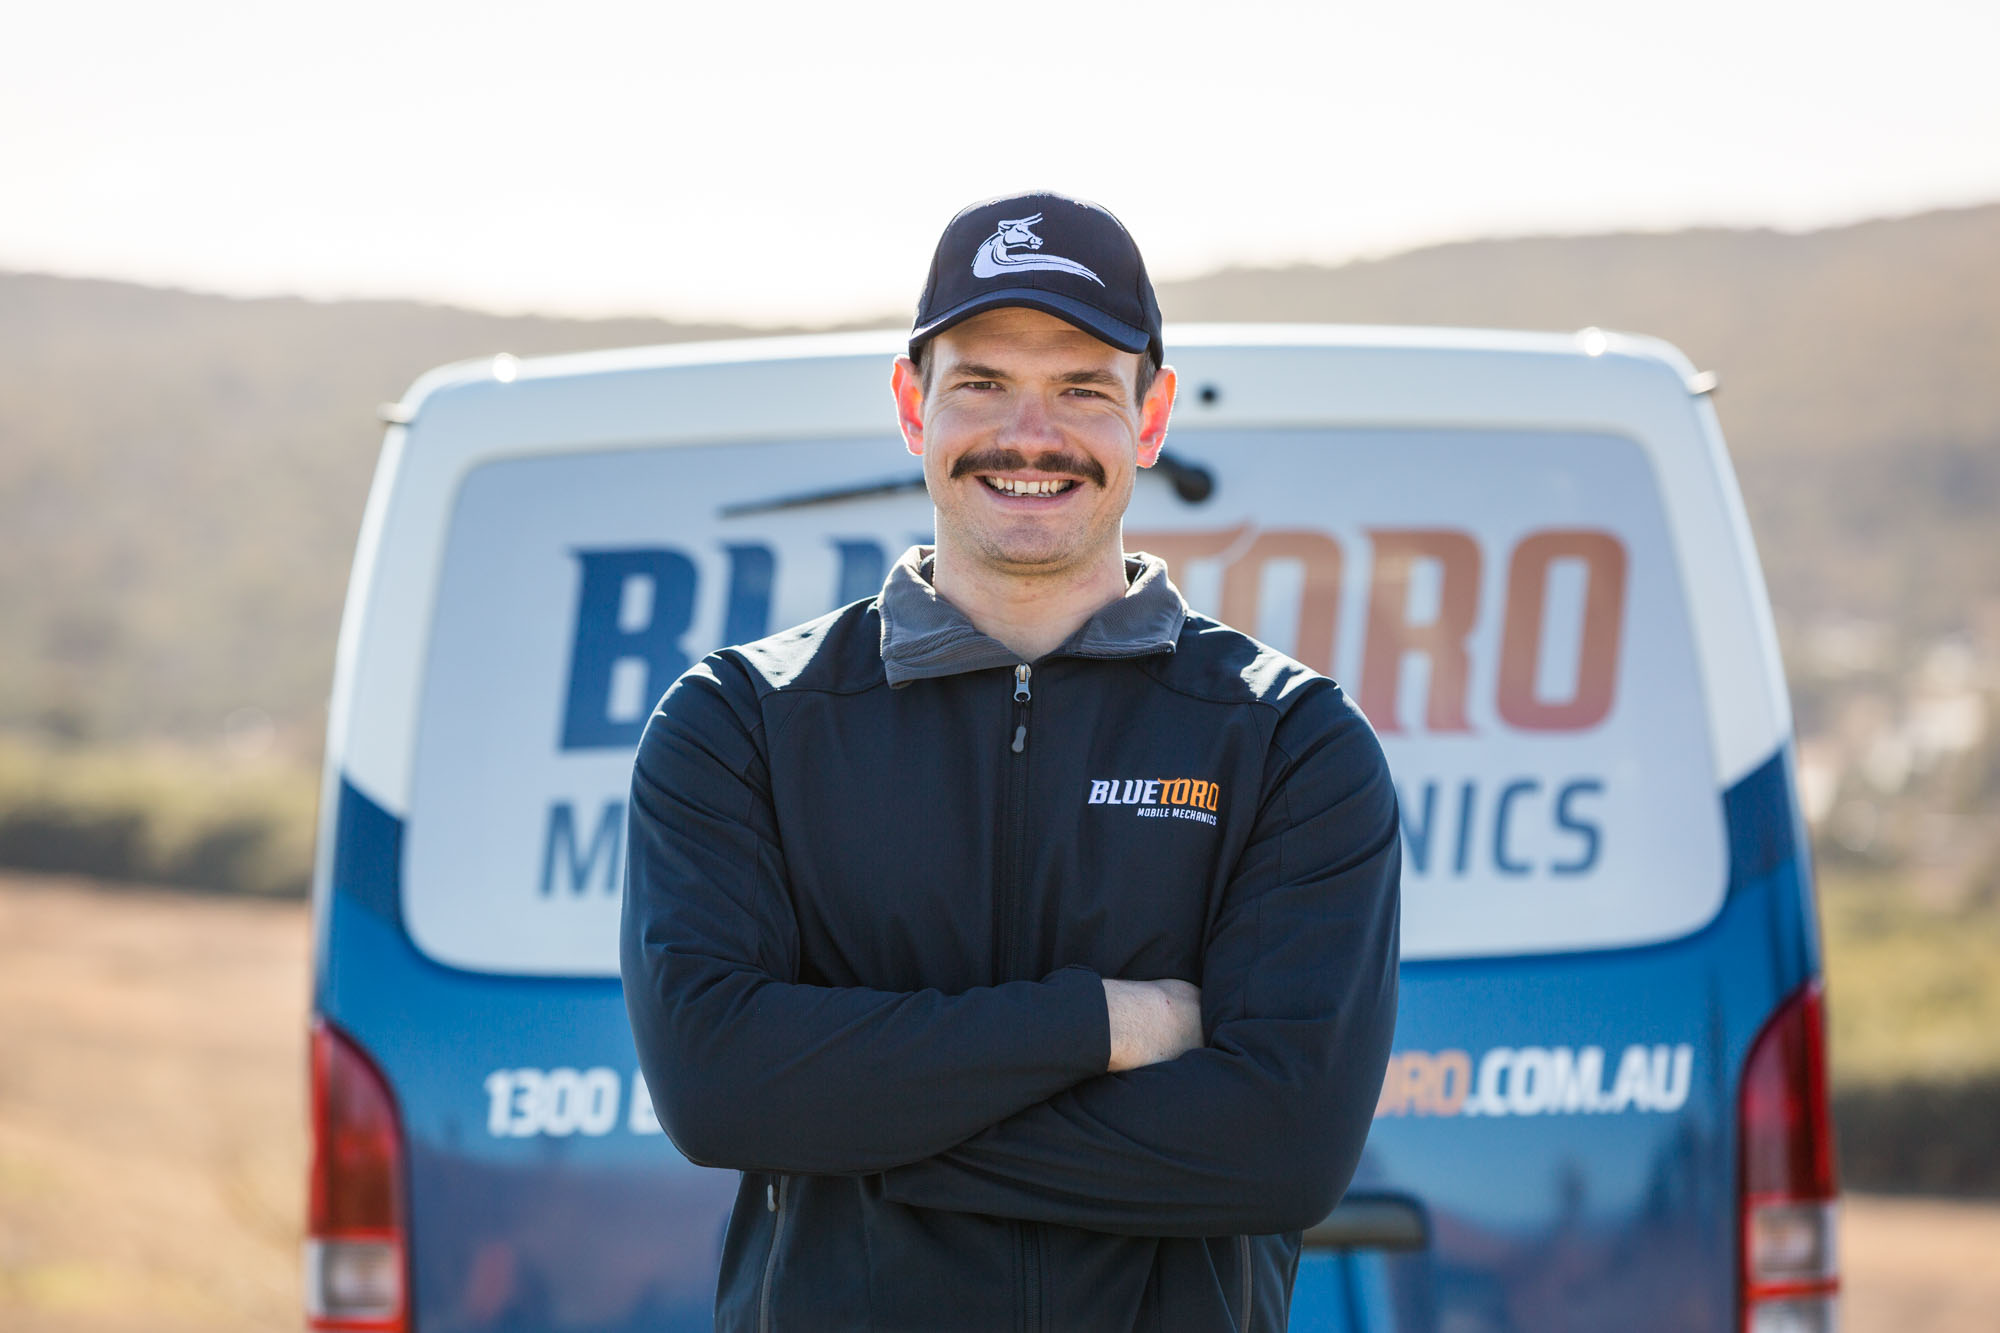 Canberra Mechanic Business for sale, earn $240,000+ | Automotive Franchise